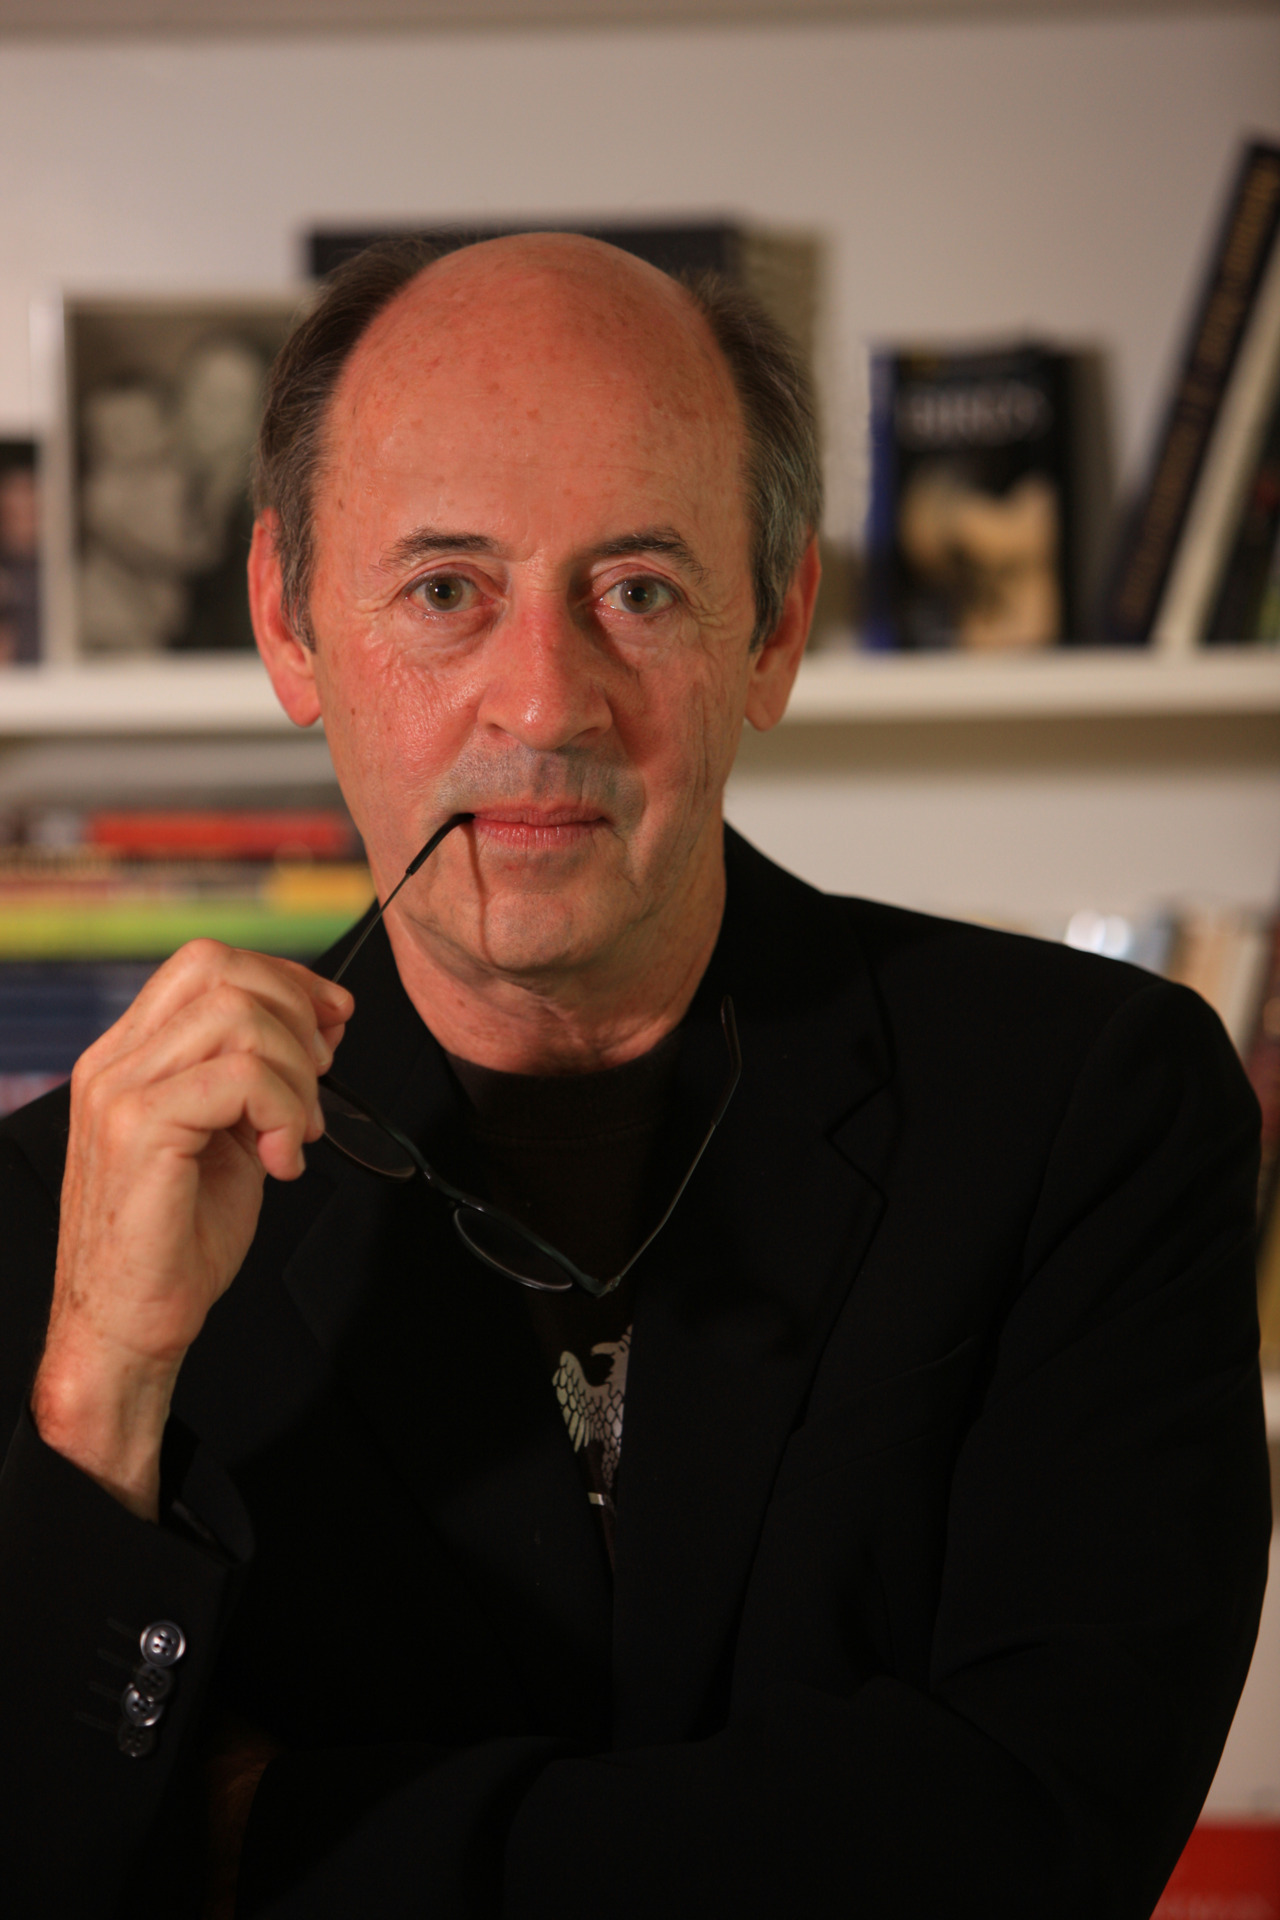 "Billy Collins is speaking in Miami. Want to attend? Here's a poem to whet your appetite. ""Flames"" Smokey the Bear headsinto the autumn woodswith a red can of gasolineand a box of wooden matches.His ranger's hat is cockedat a disturbing angle.His brown fur gleamsunder the high sunas his paws, the sizeof catcher's mitts,crackle into the distance.He is sick of dispensingwarnings to the careless,the half-wit camper,the dumbbell hiker.He is going to show themhow a professional does it."